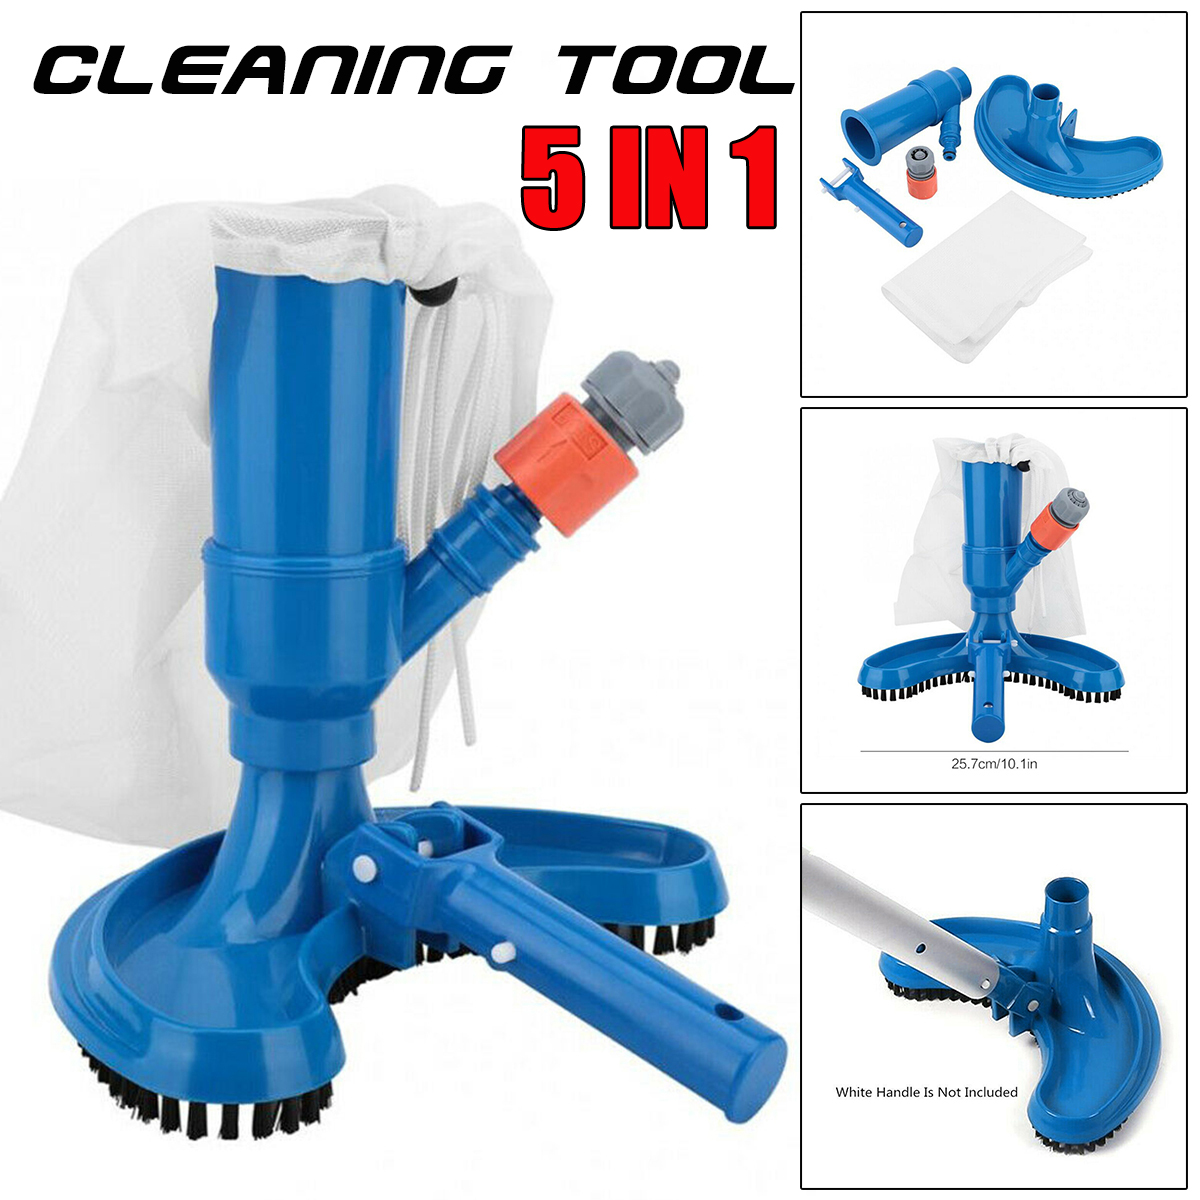 Bag Pool Vacuum Jet Cleaner W//Brush And Pole Pool Cleaning Accessories For Pool Spa Fountain Hot Tub Portable Pool Vacuum Jet Cleaner